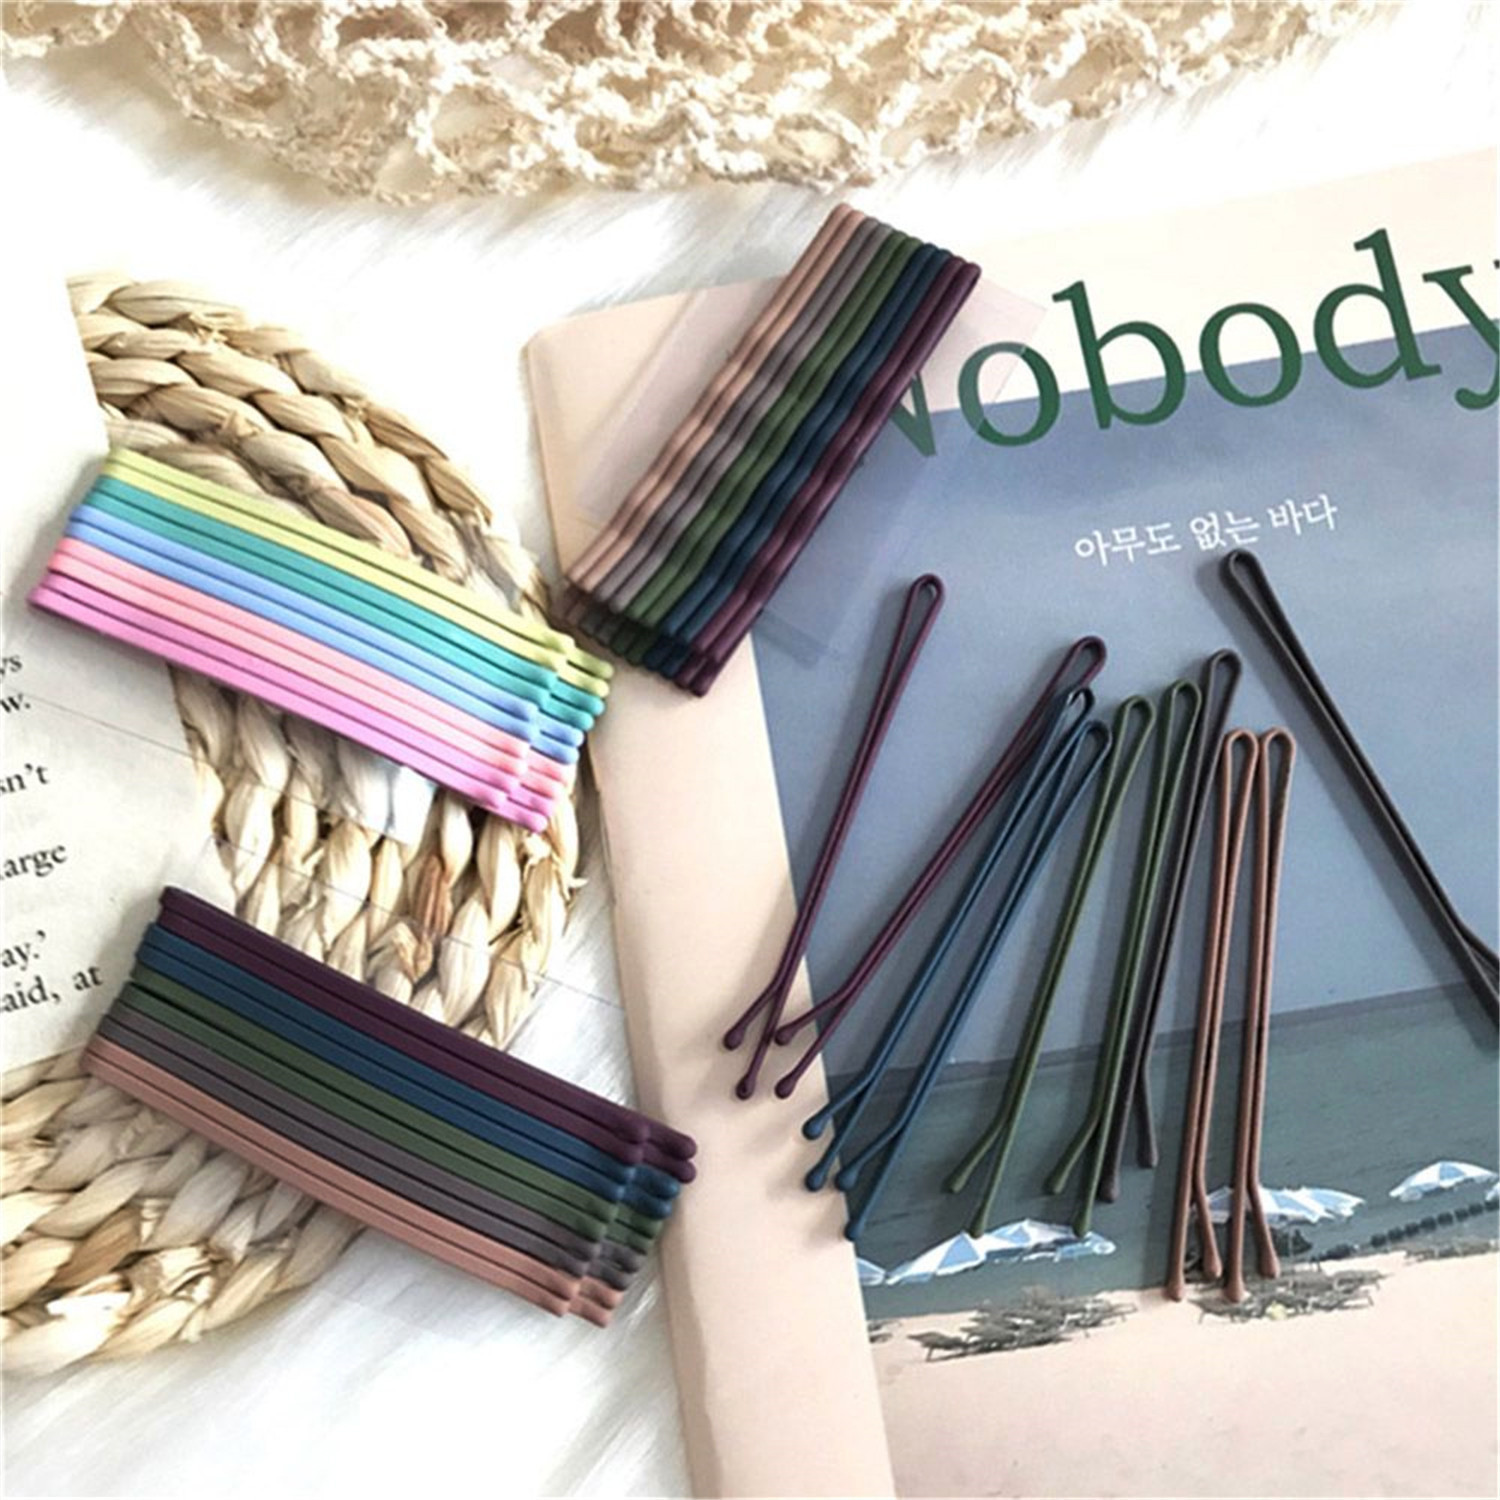 10 Pcs/Set Chic Retro Hair Clip Women Ladies Metal Hairpins Curly Wavy Straight Women Bobby Pins Hair Styling Accessories